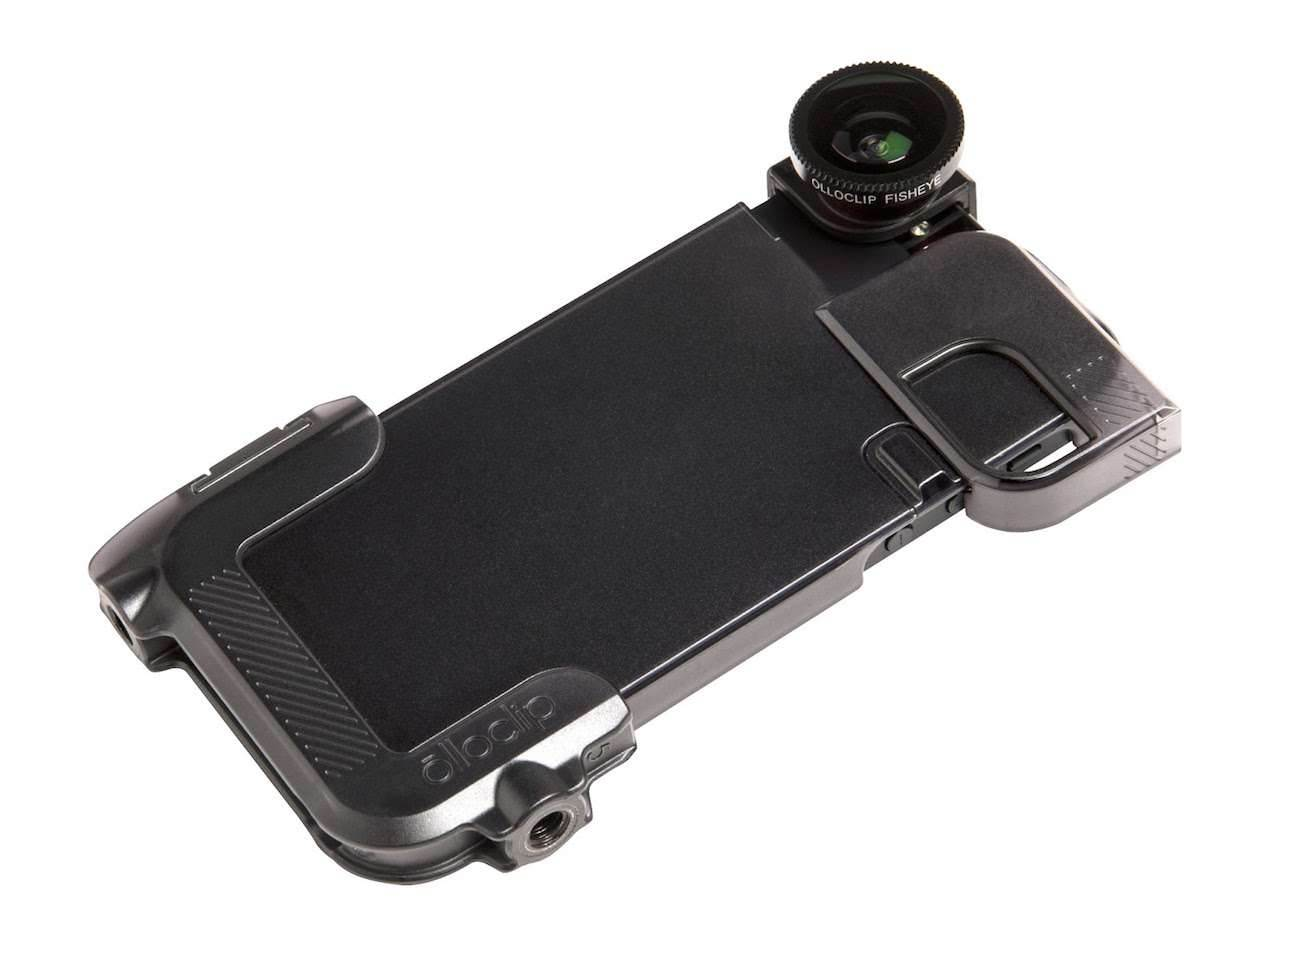 olloclip case with pro-photo adapter